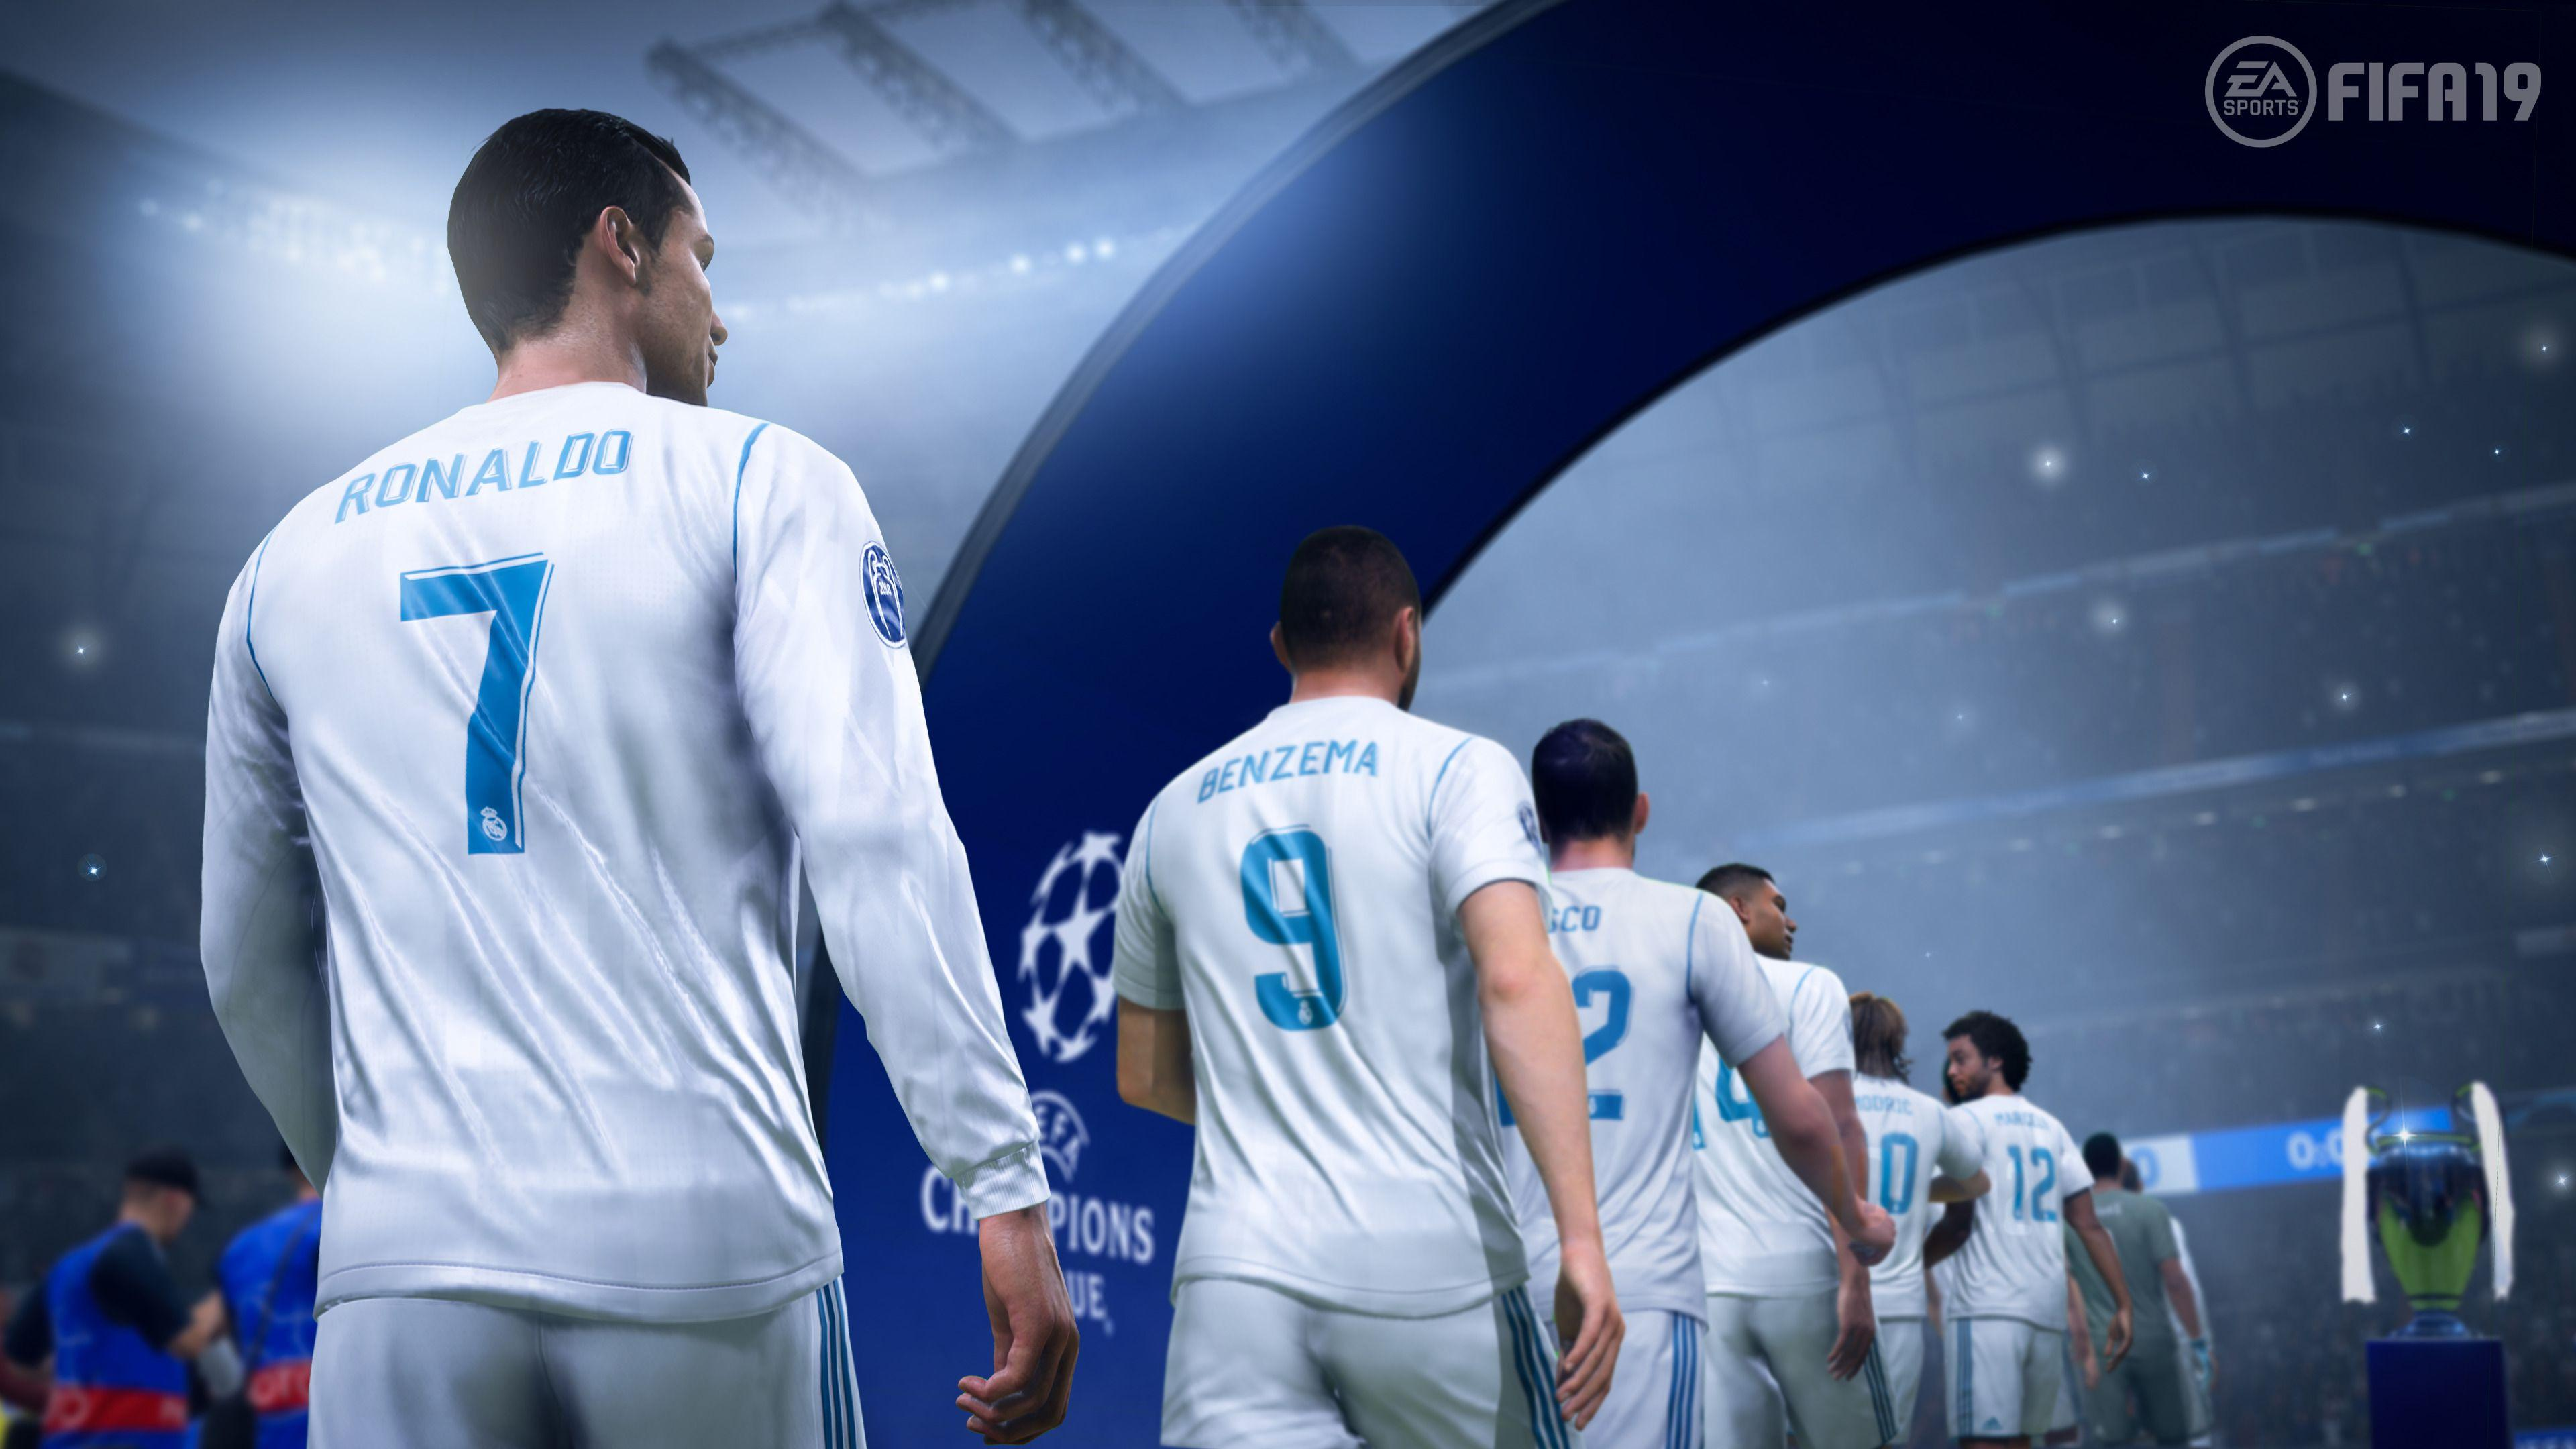 Fifa  Ronaldo Hd Games K Wallpapers Images Backgrounds